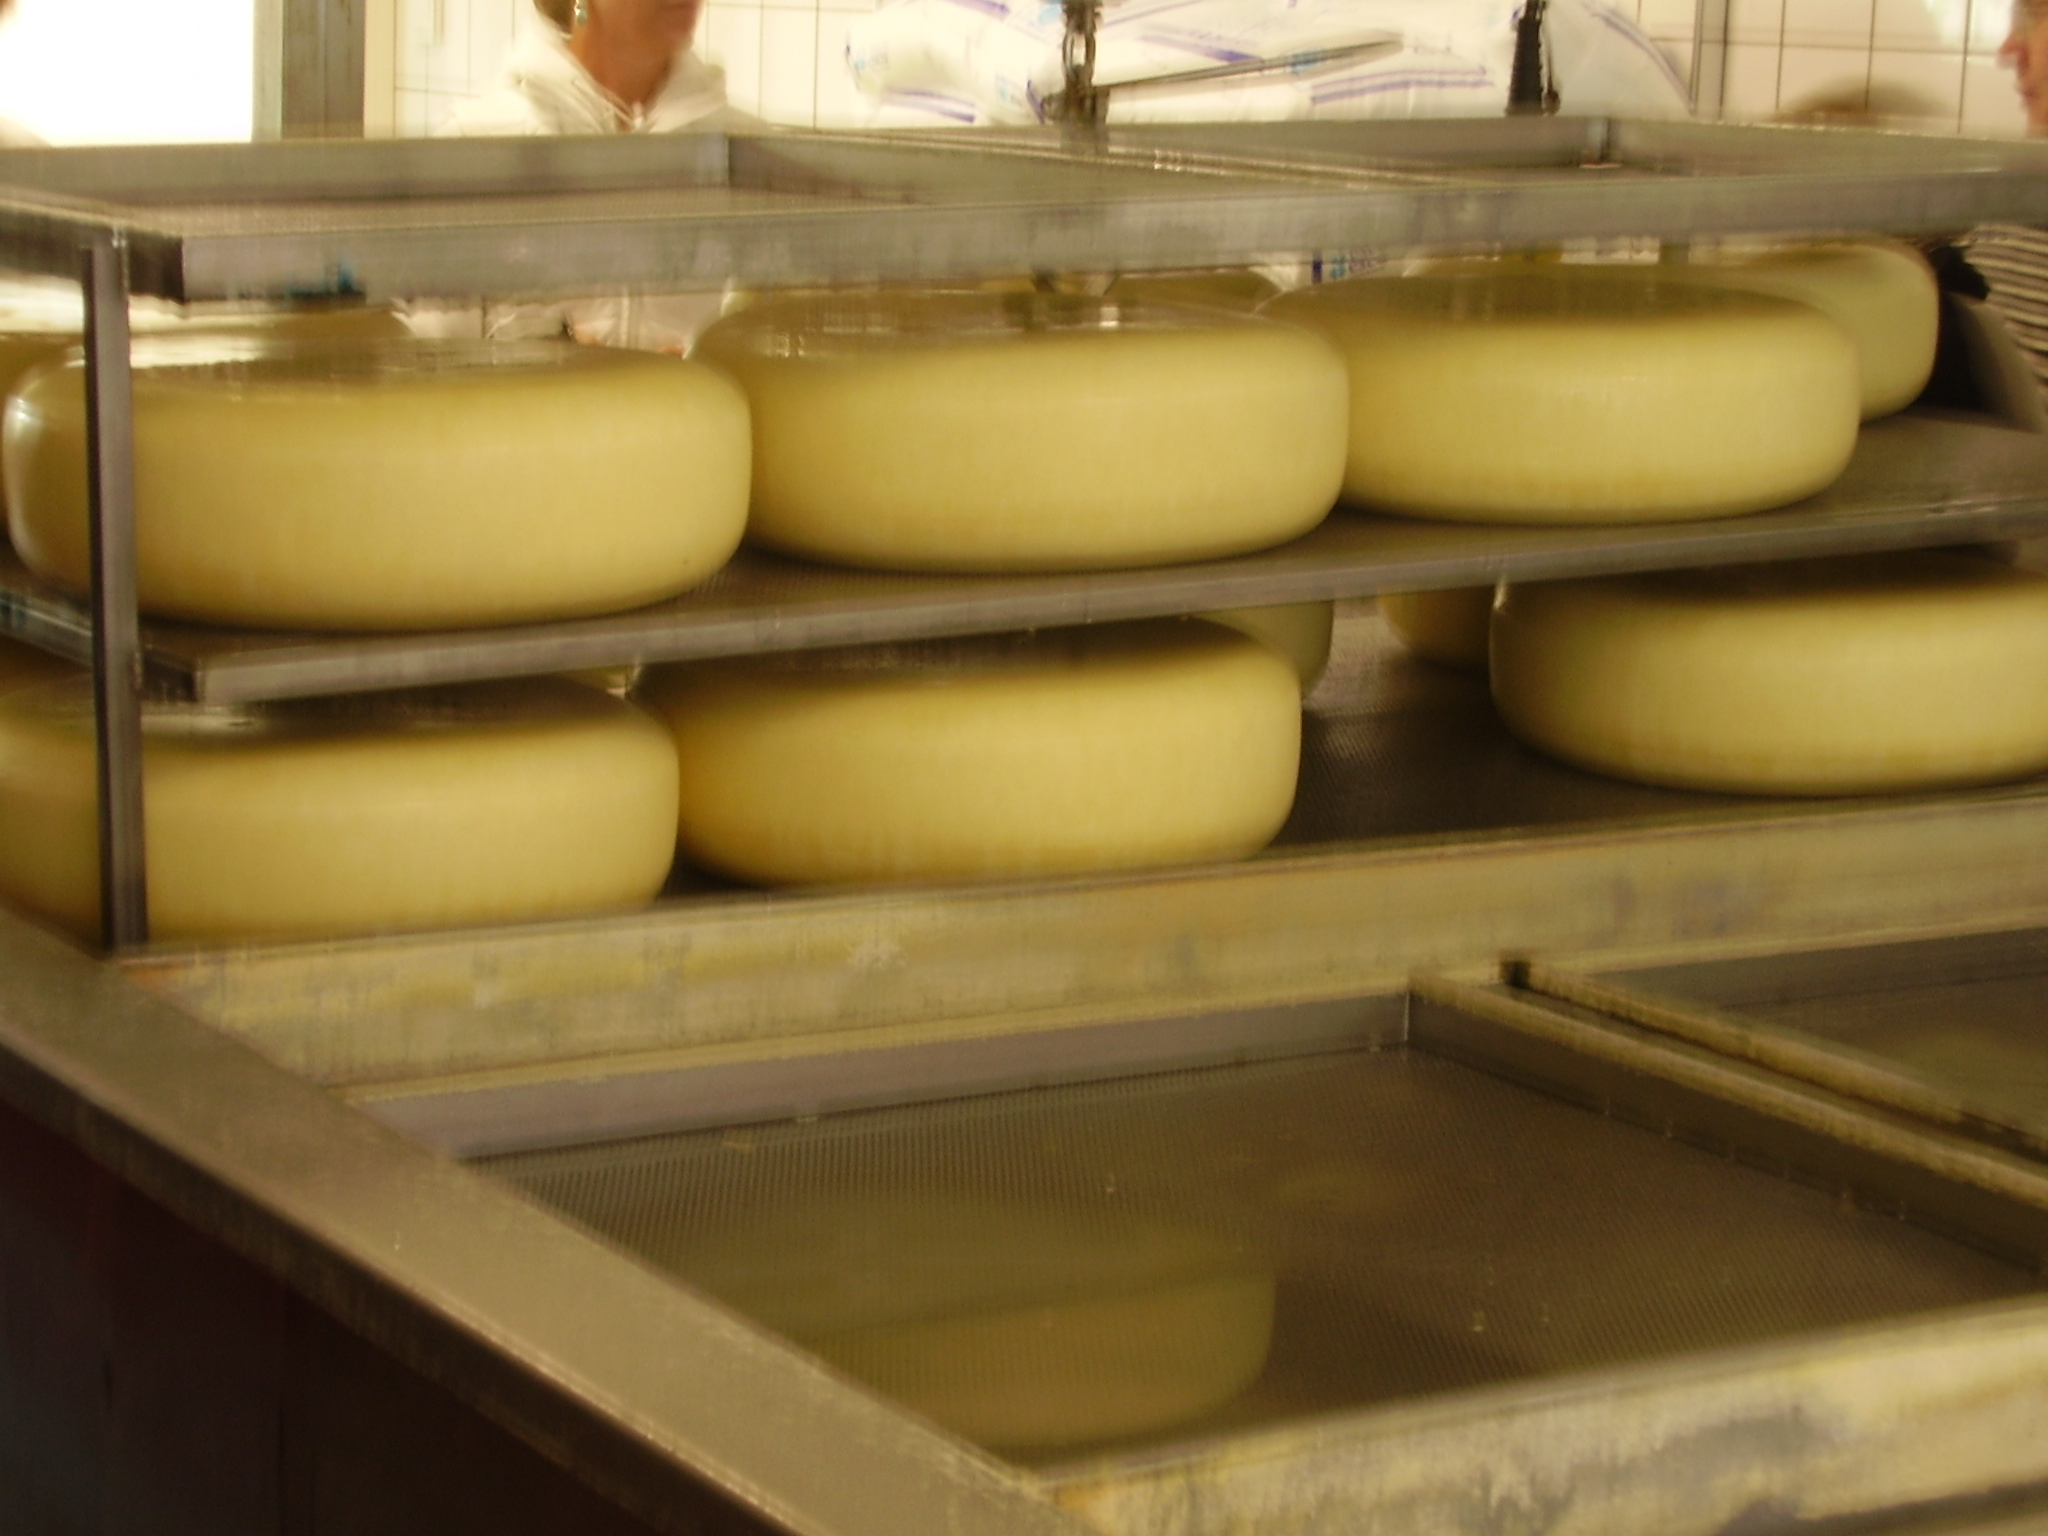 File:Chesse gouda immersion.JPG - Wikimedia Commons